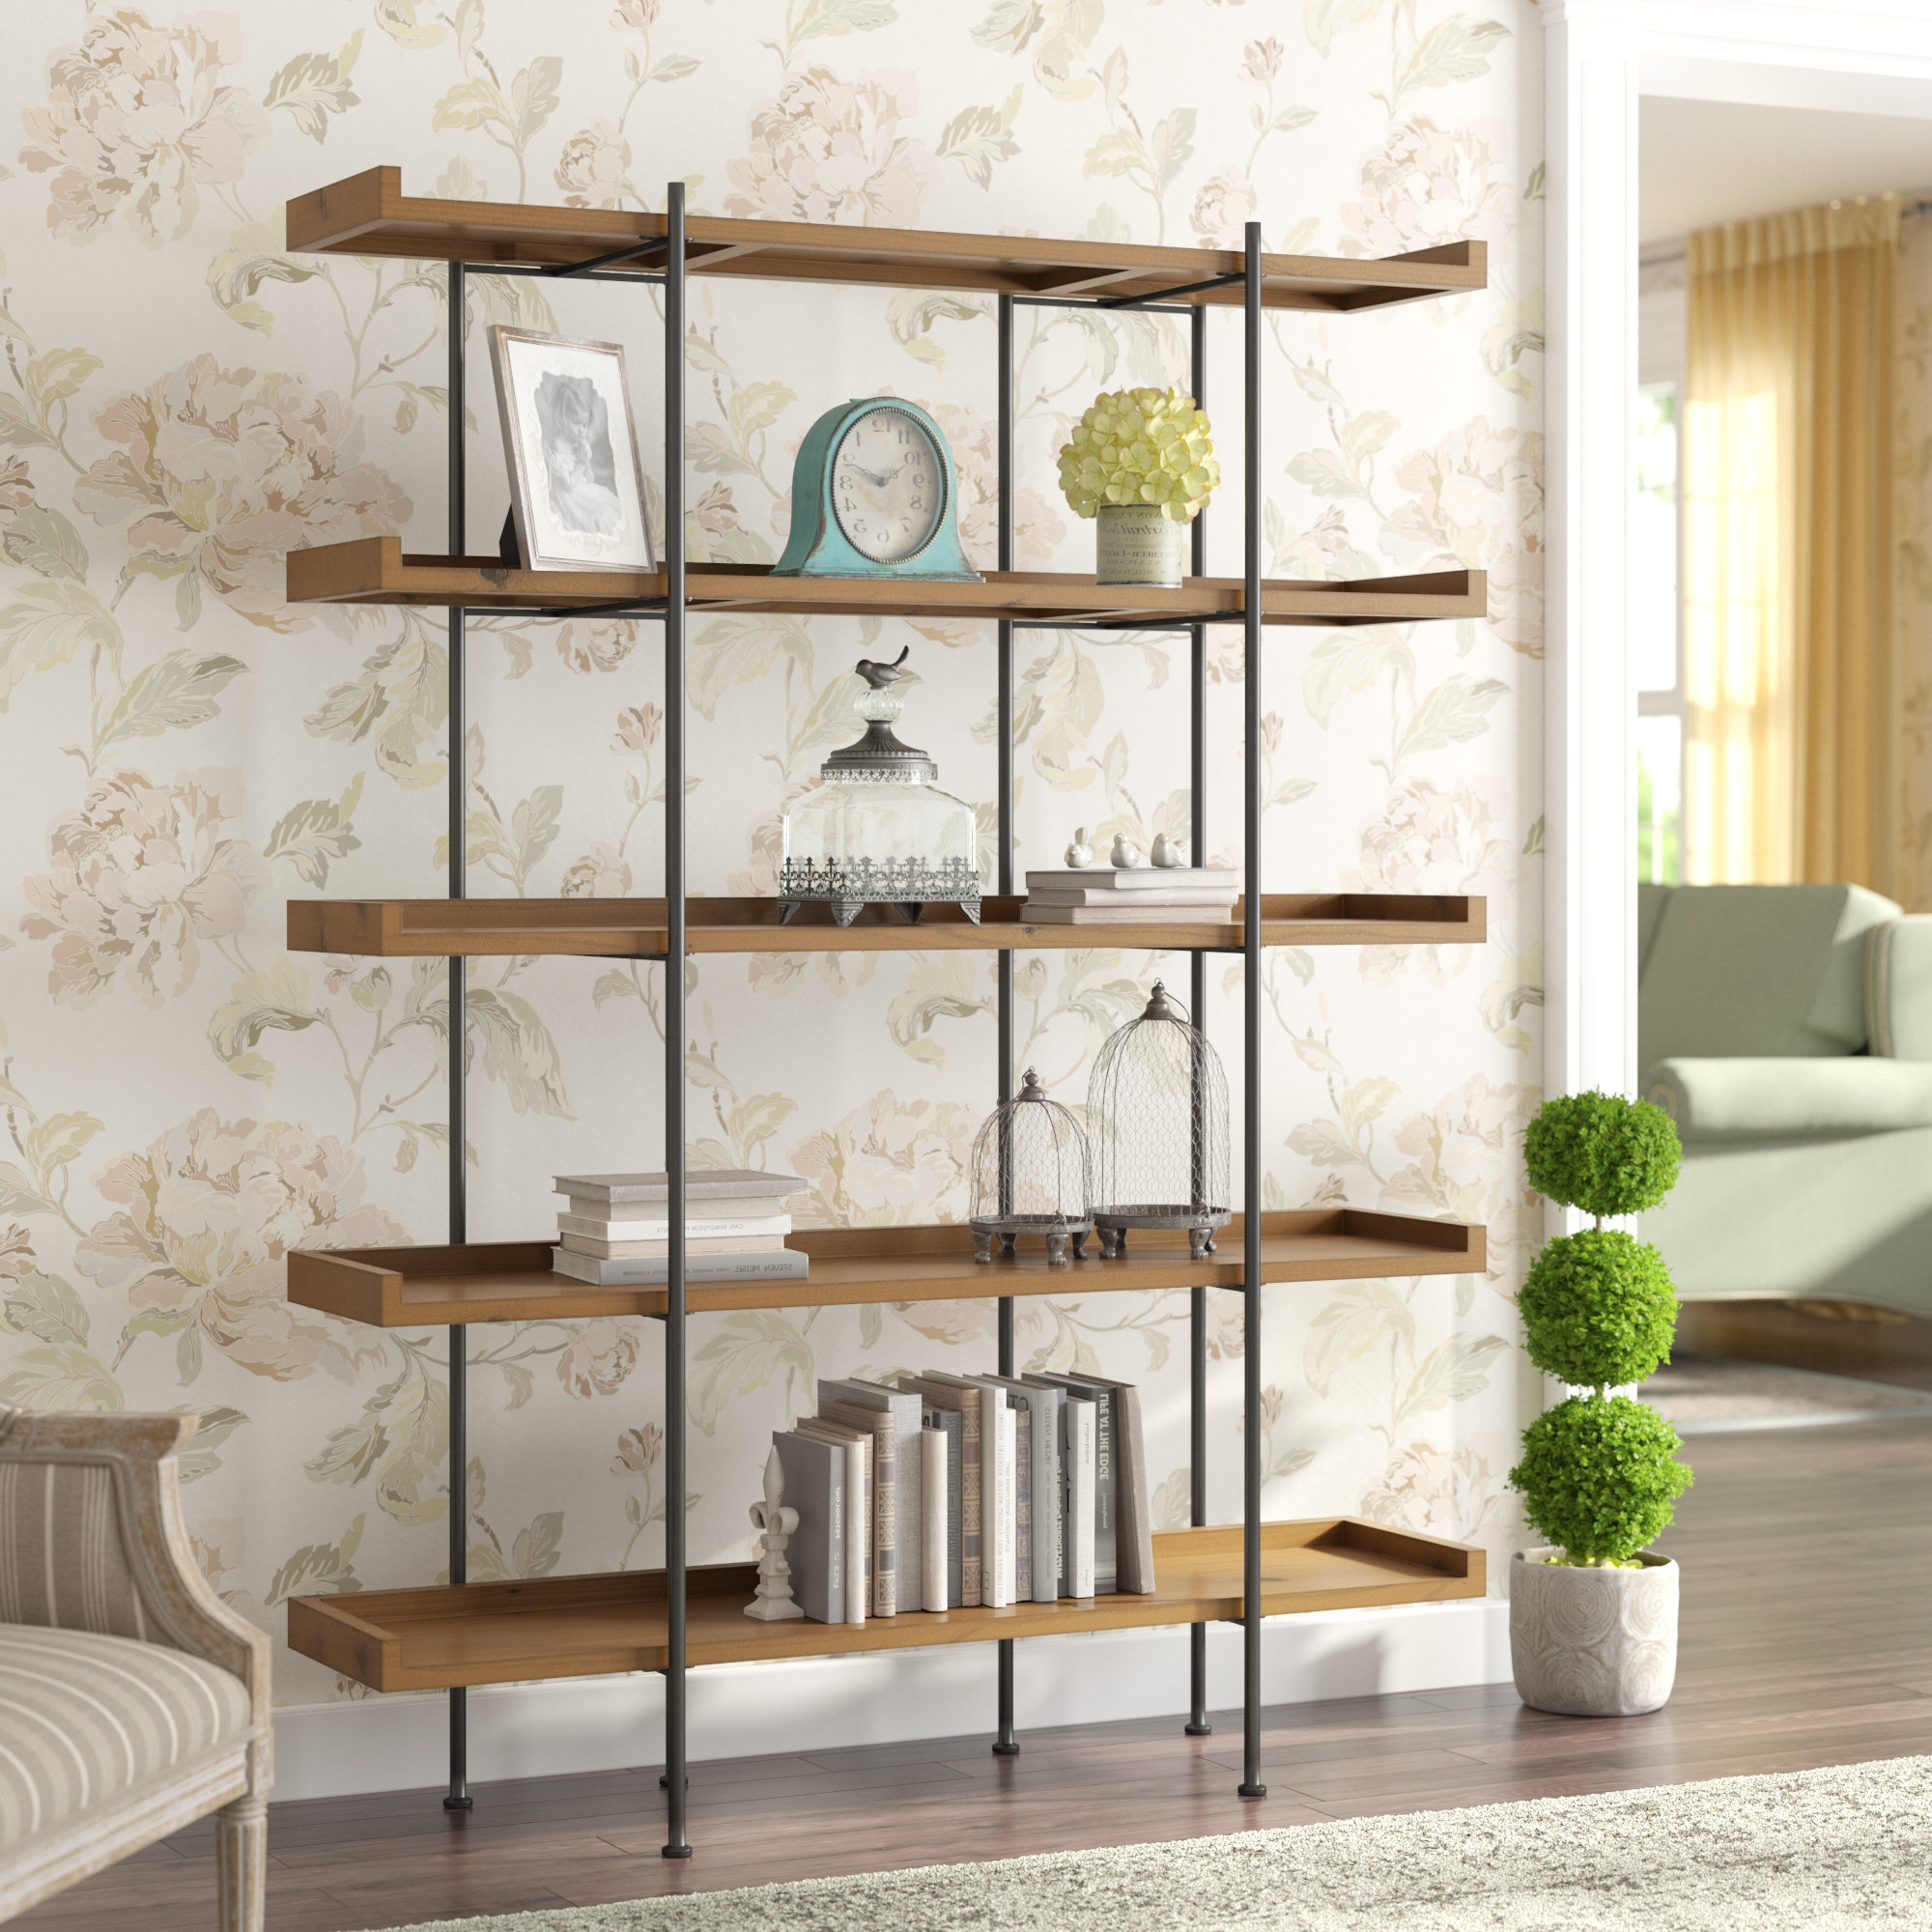 Widely Used Whidden Etagere Bookcases Within Wanda Etagere Bookcase (View 19 of 20)